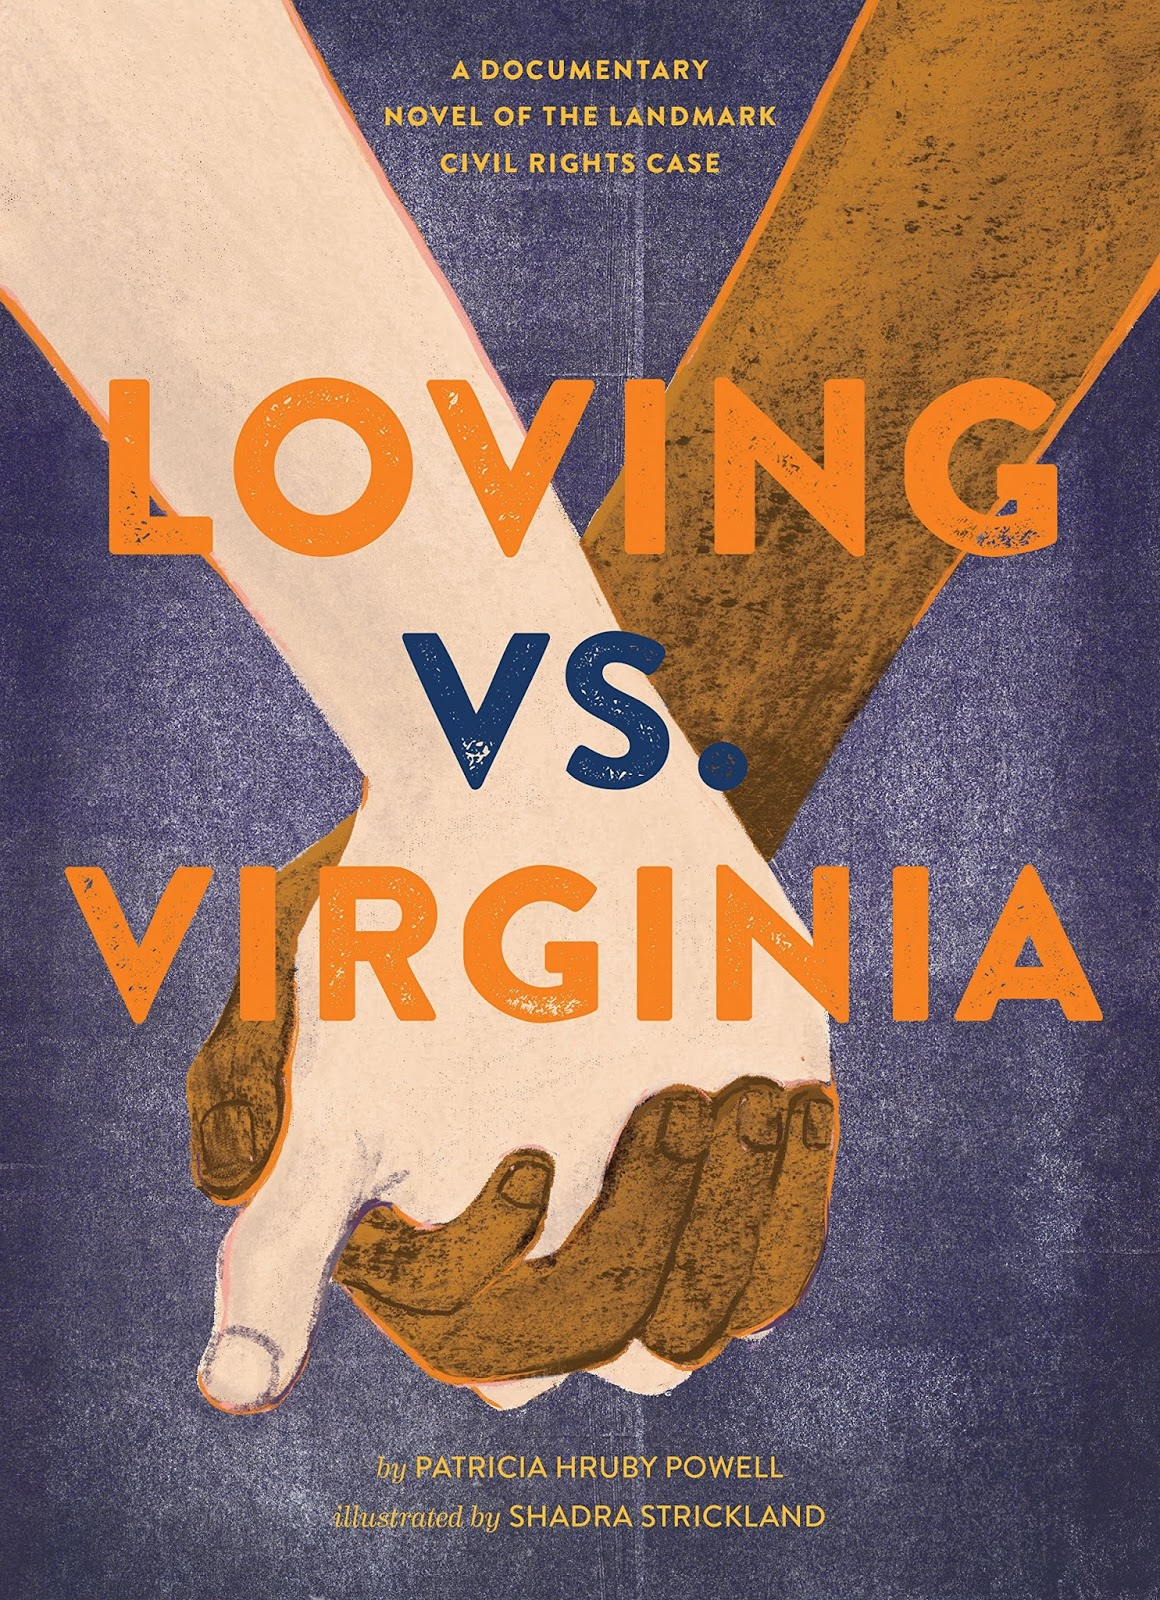 Virginia Illustrator Shadra Strickland By Jennifer Tolo Pierce From The Chronicle Books Blog Peek Challenge For Me Was To Retain Looseness And